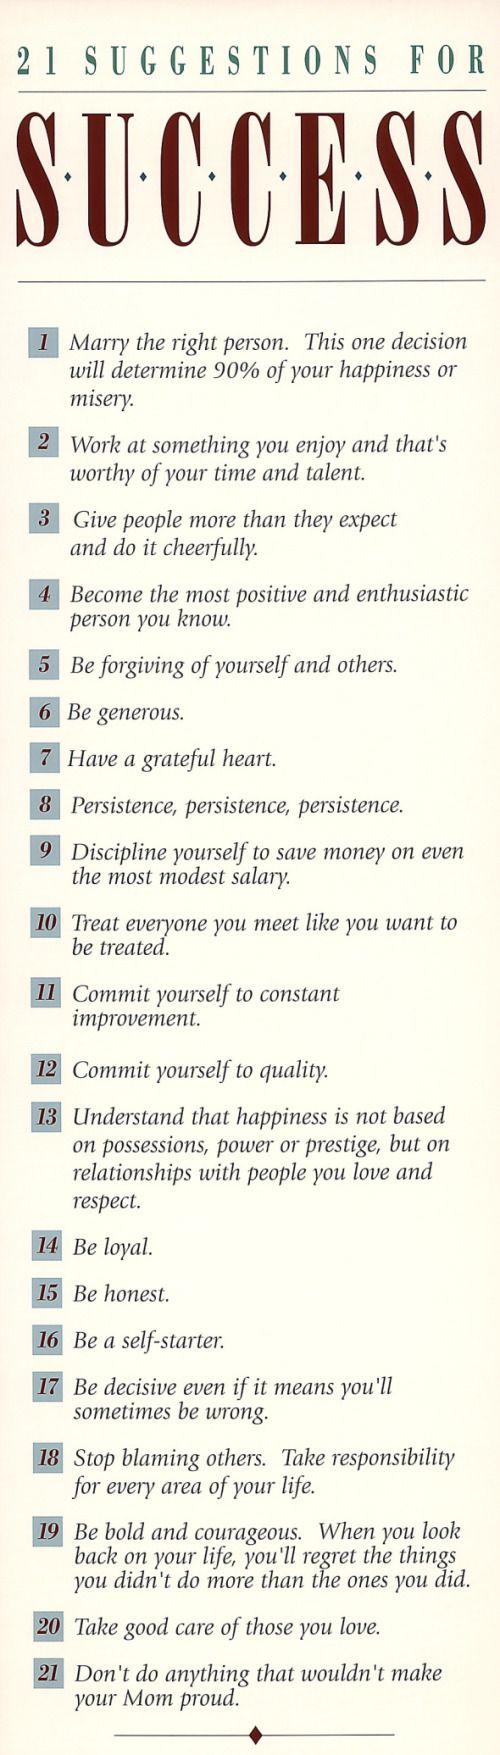 21 Suggestions for success - love it! Thanks The Better Man Project!